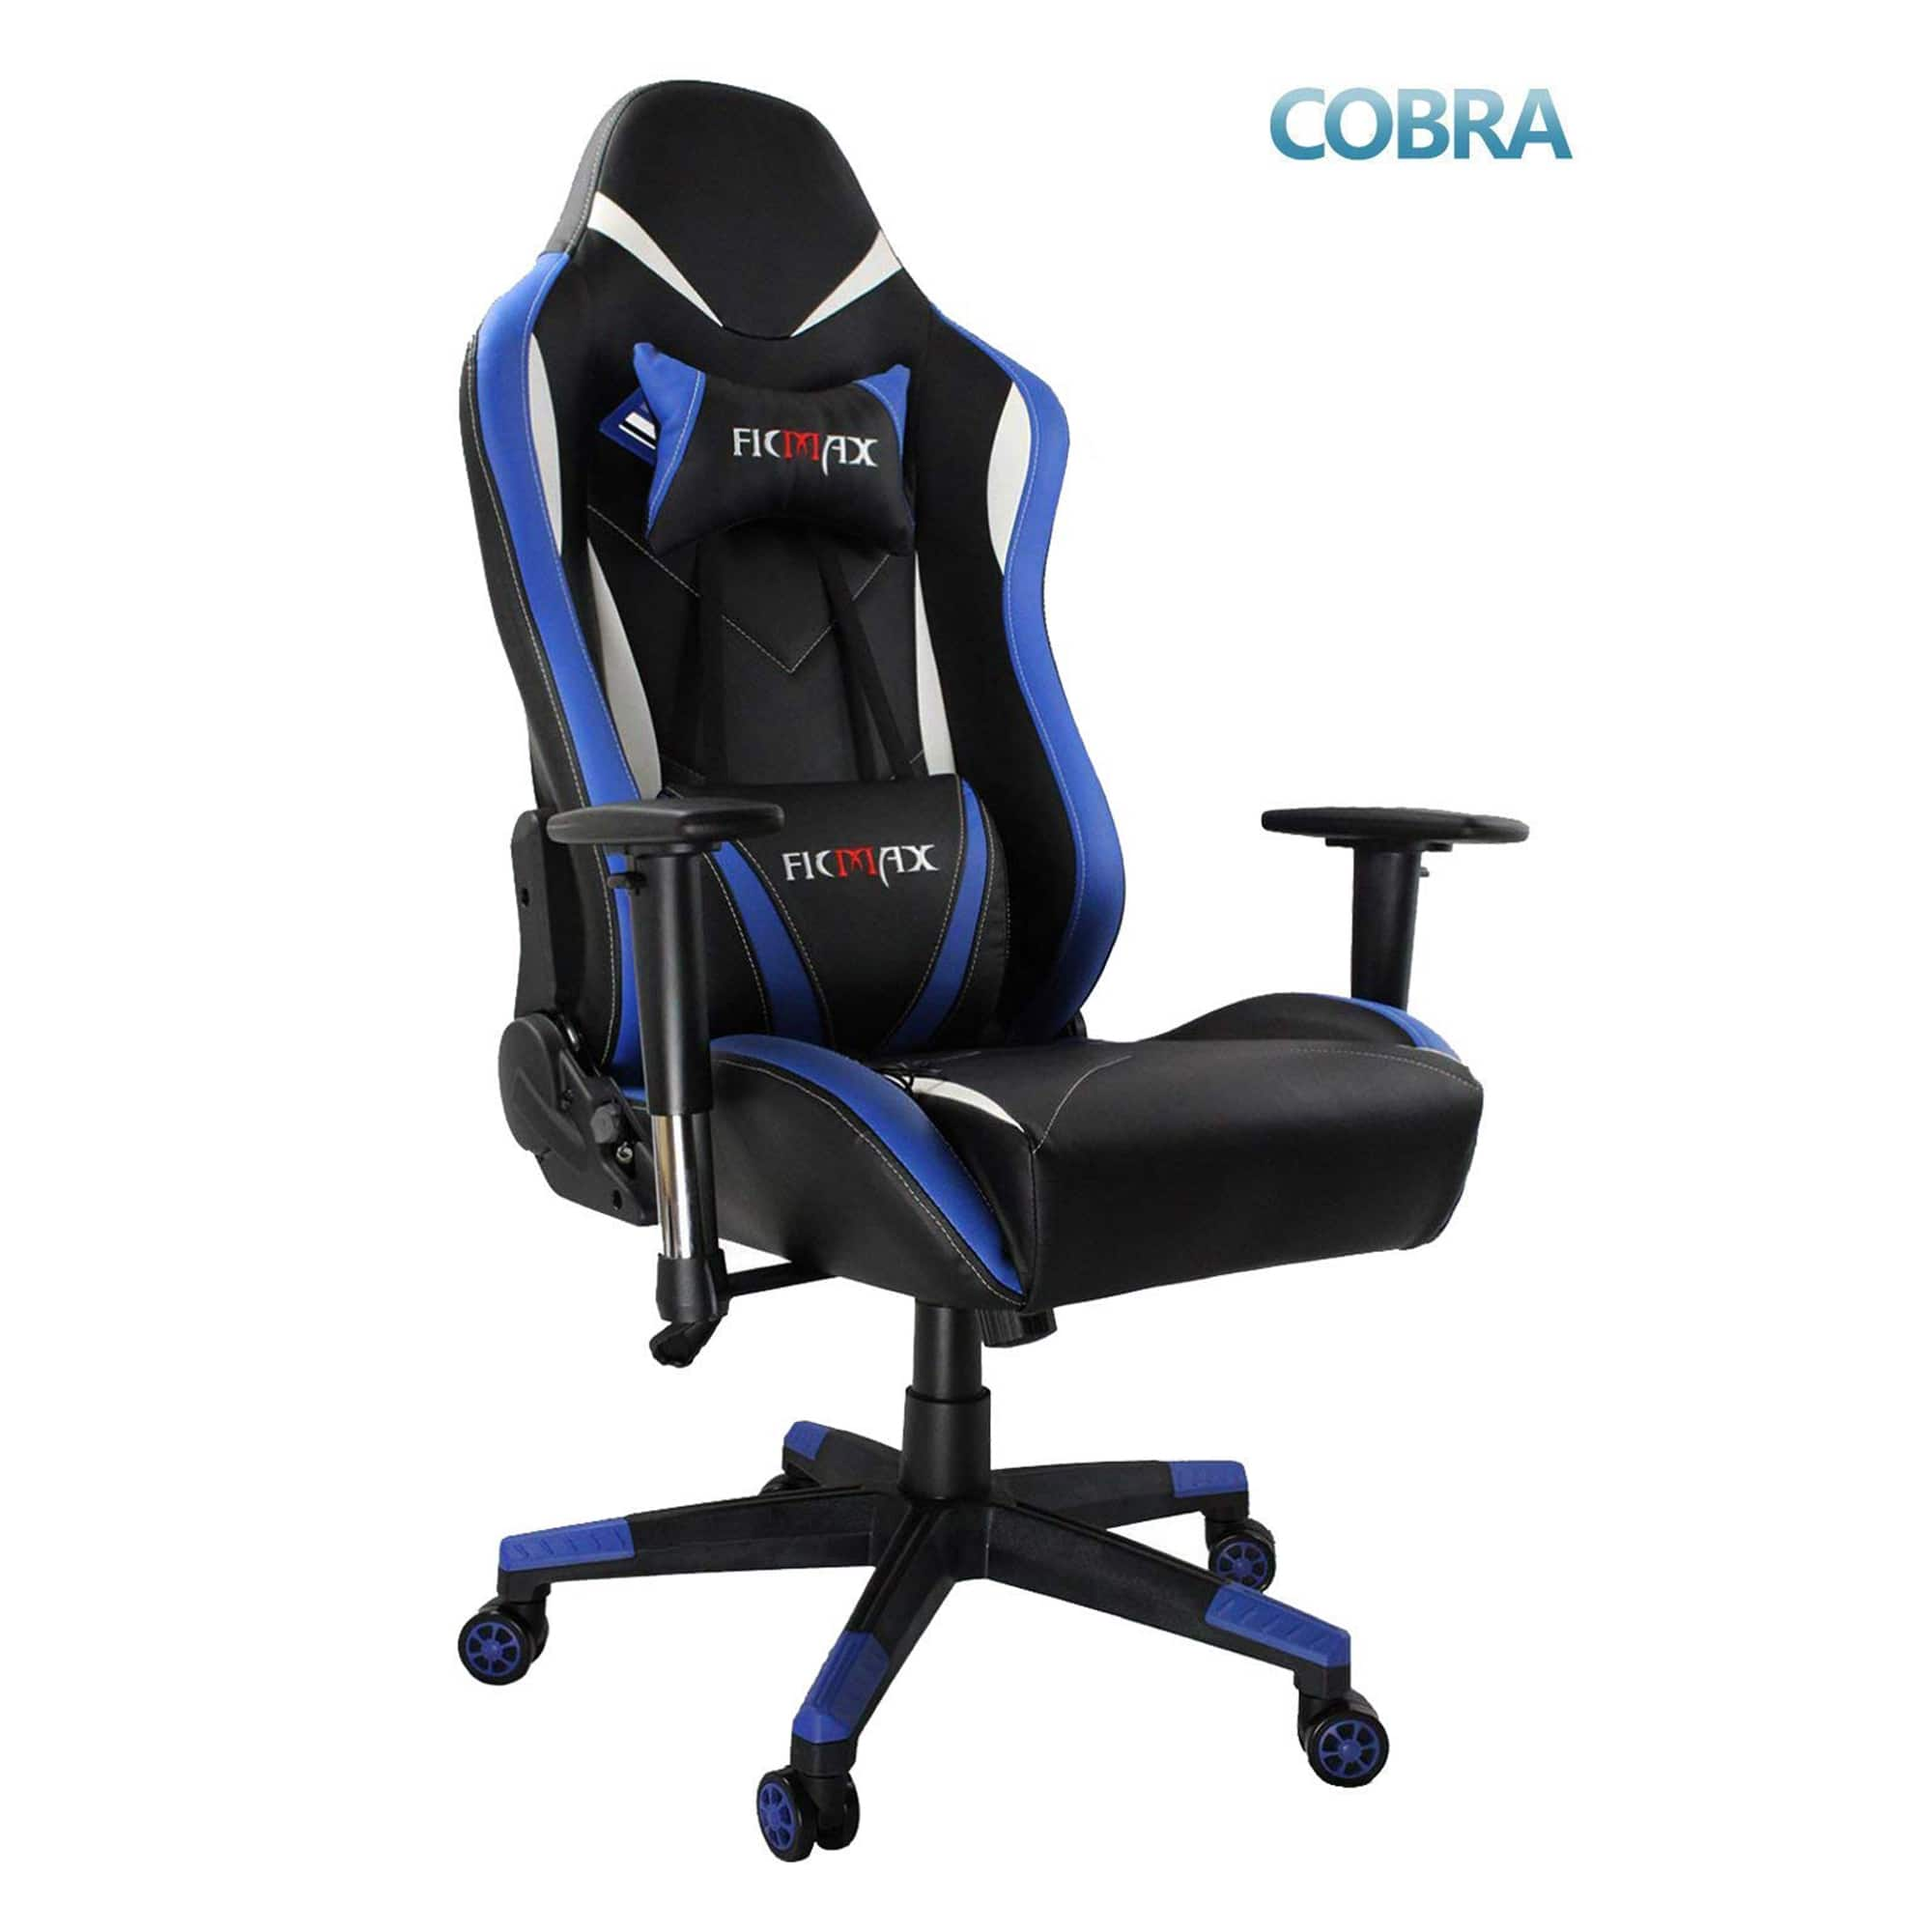 Ficmax Racing Style Gaming Chair with Massage Lumbar Support and Headrest Pillow - $85.99 + Free Shipping